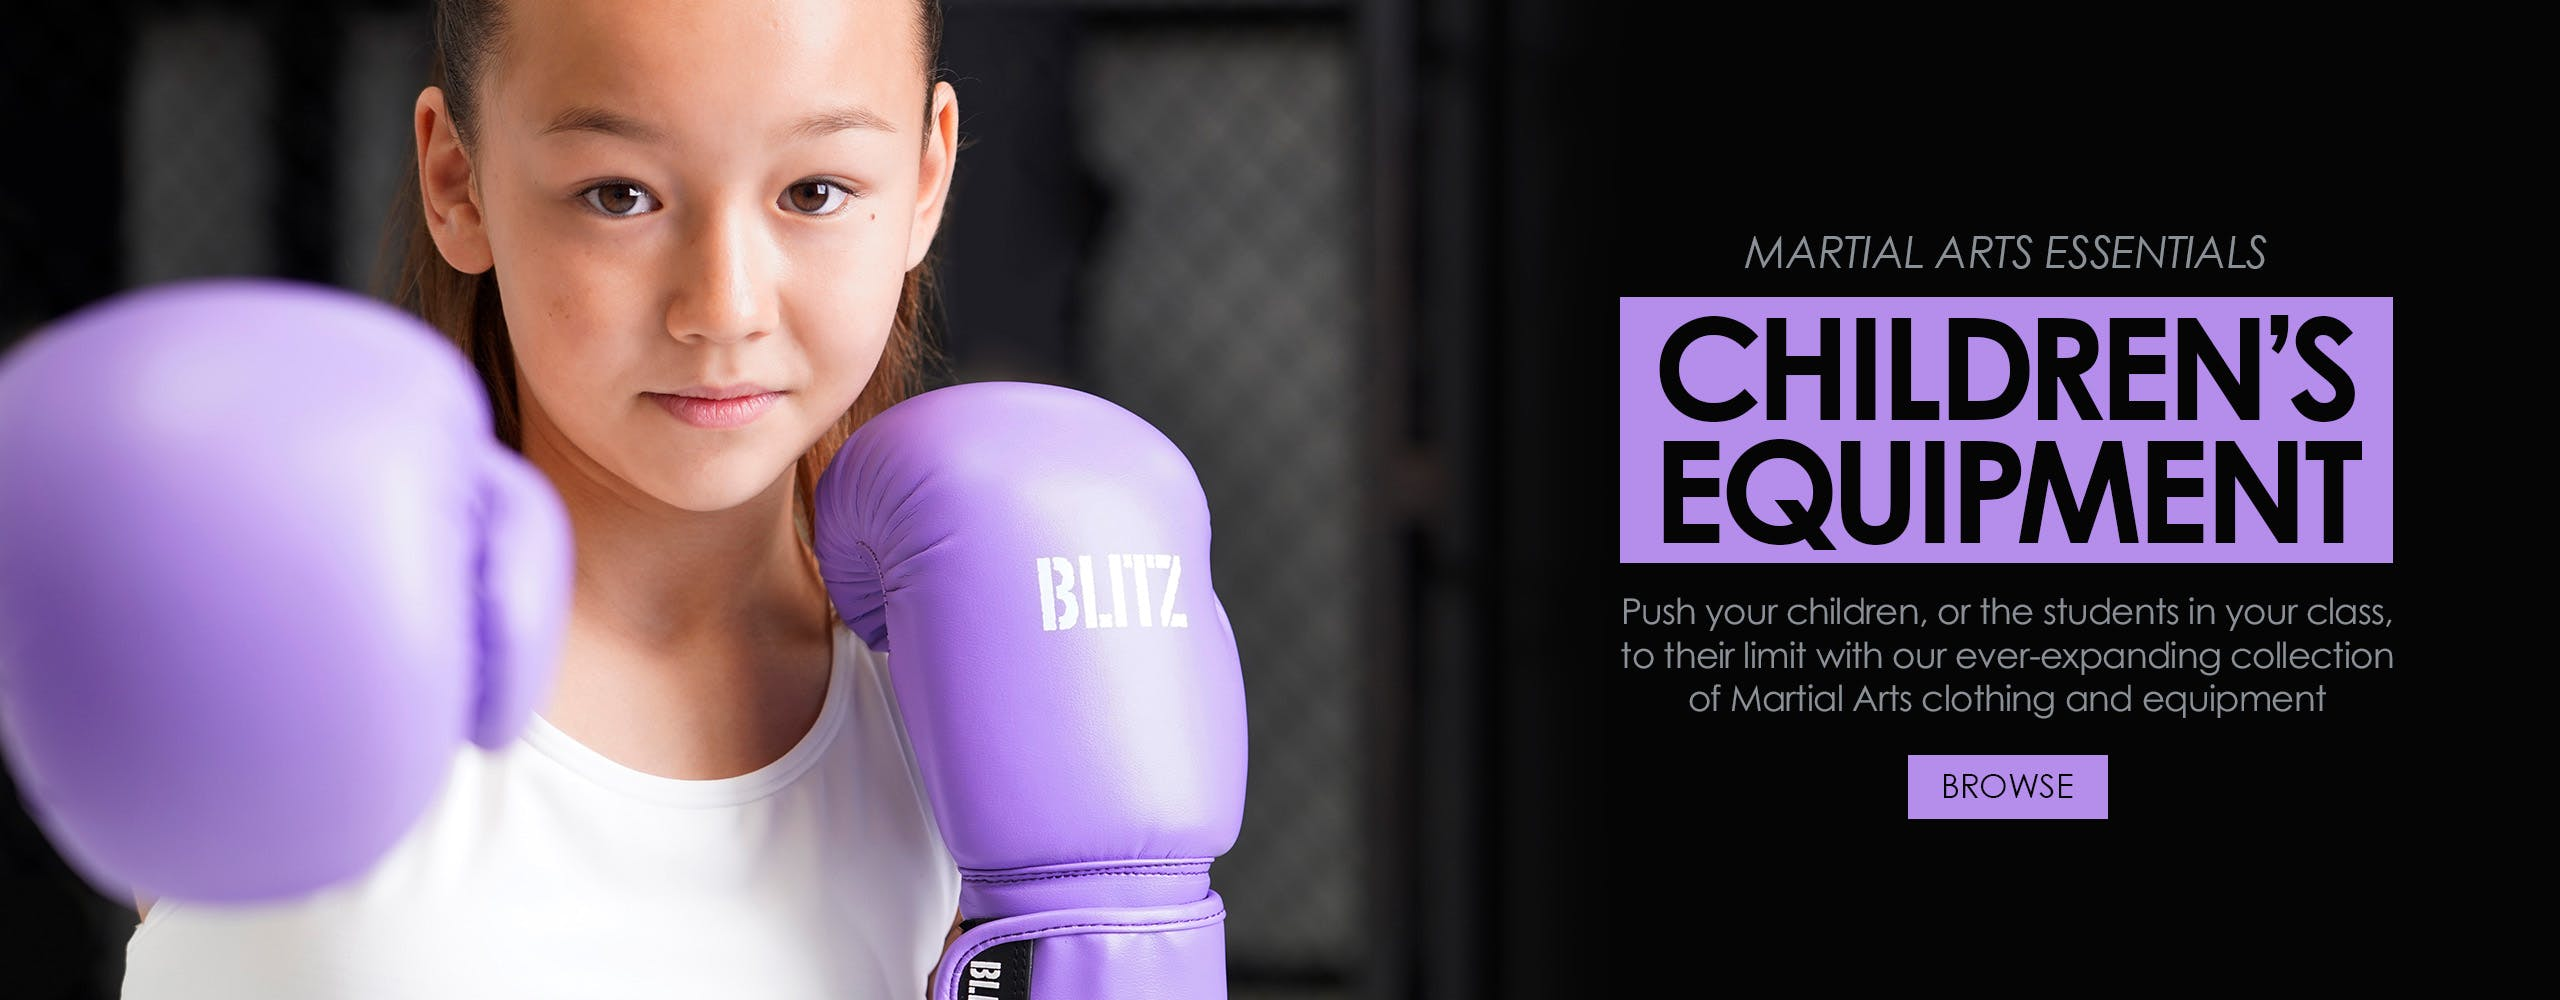 Push your children, or the students in your class, to their limit with our ever-expanding collection of Martial Arts clothing and equipment.